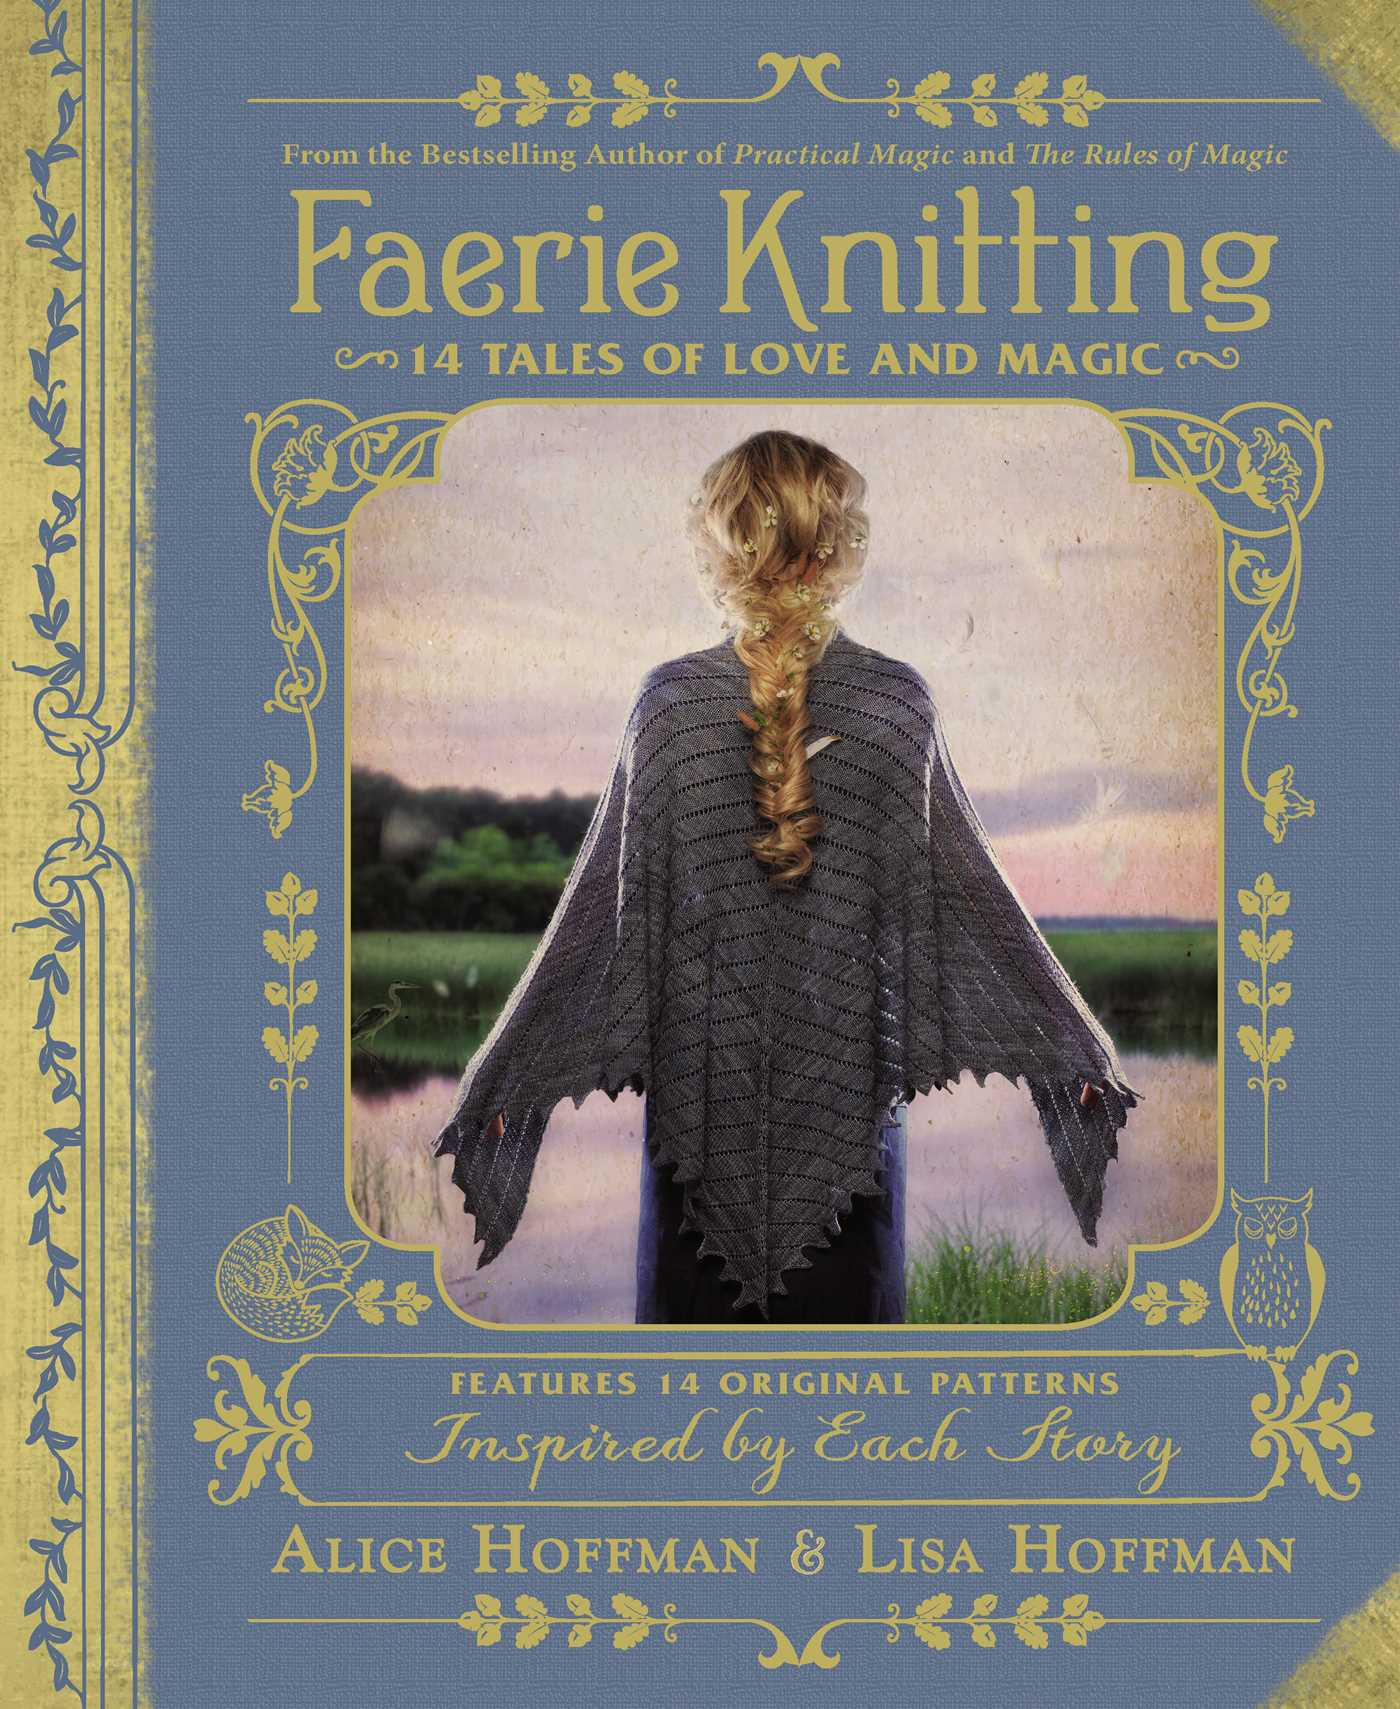 Craft Book Spotlight: Faerie Knitting